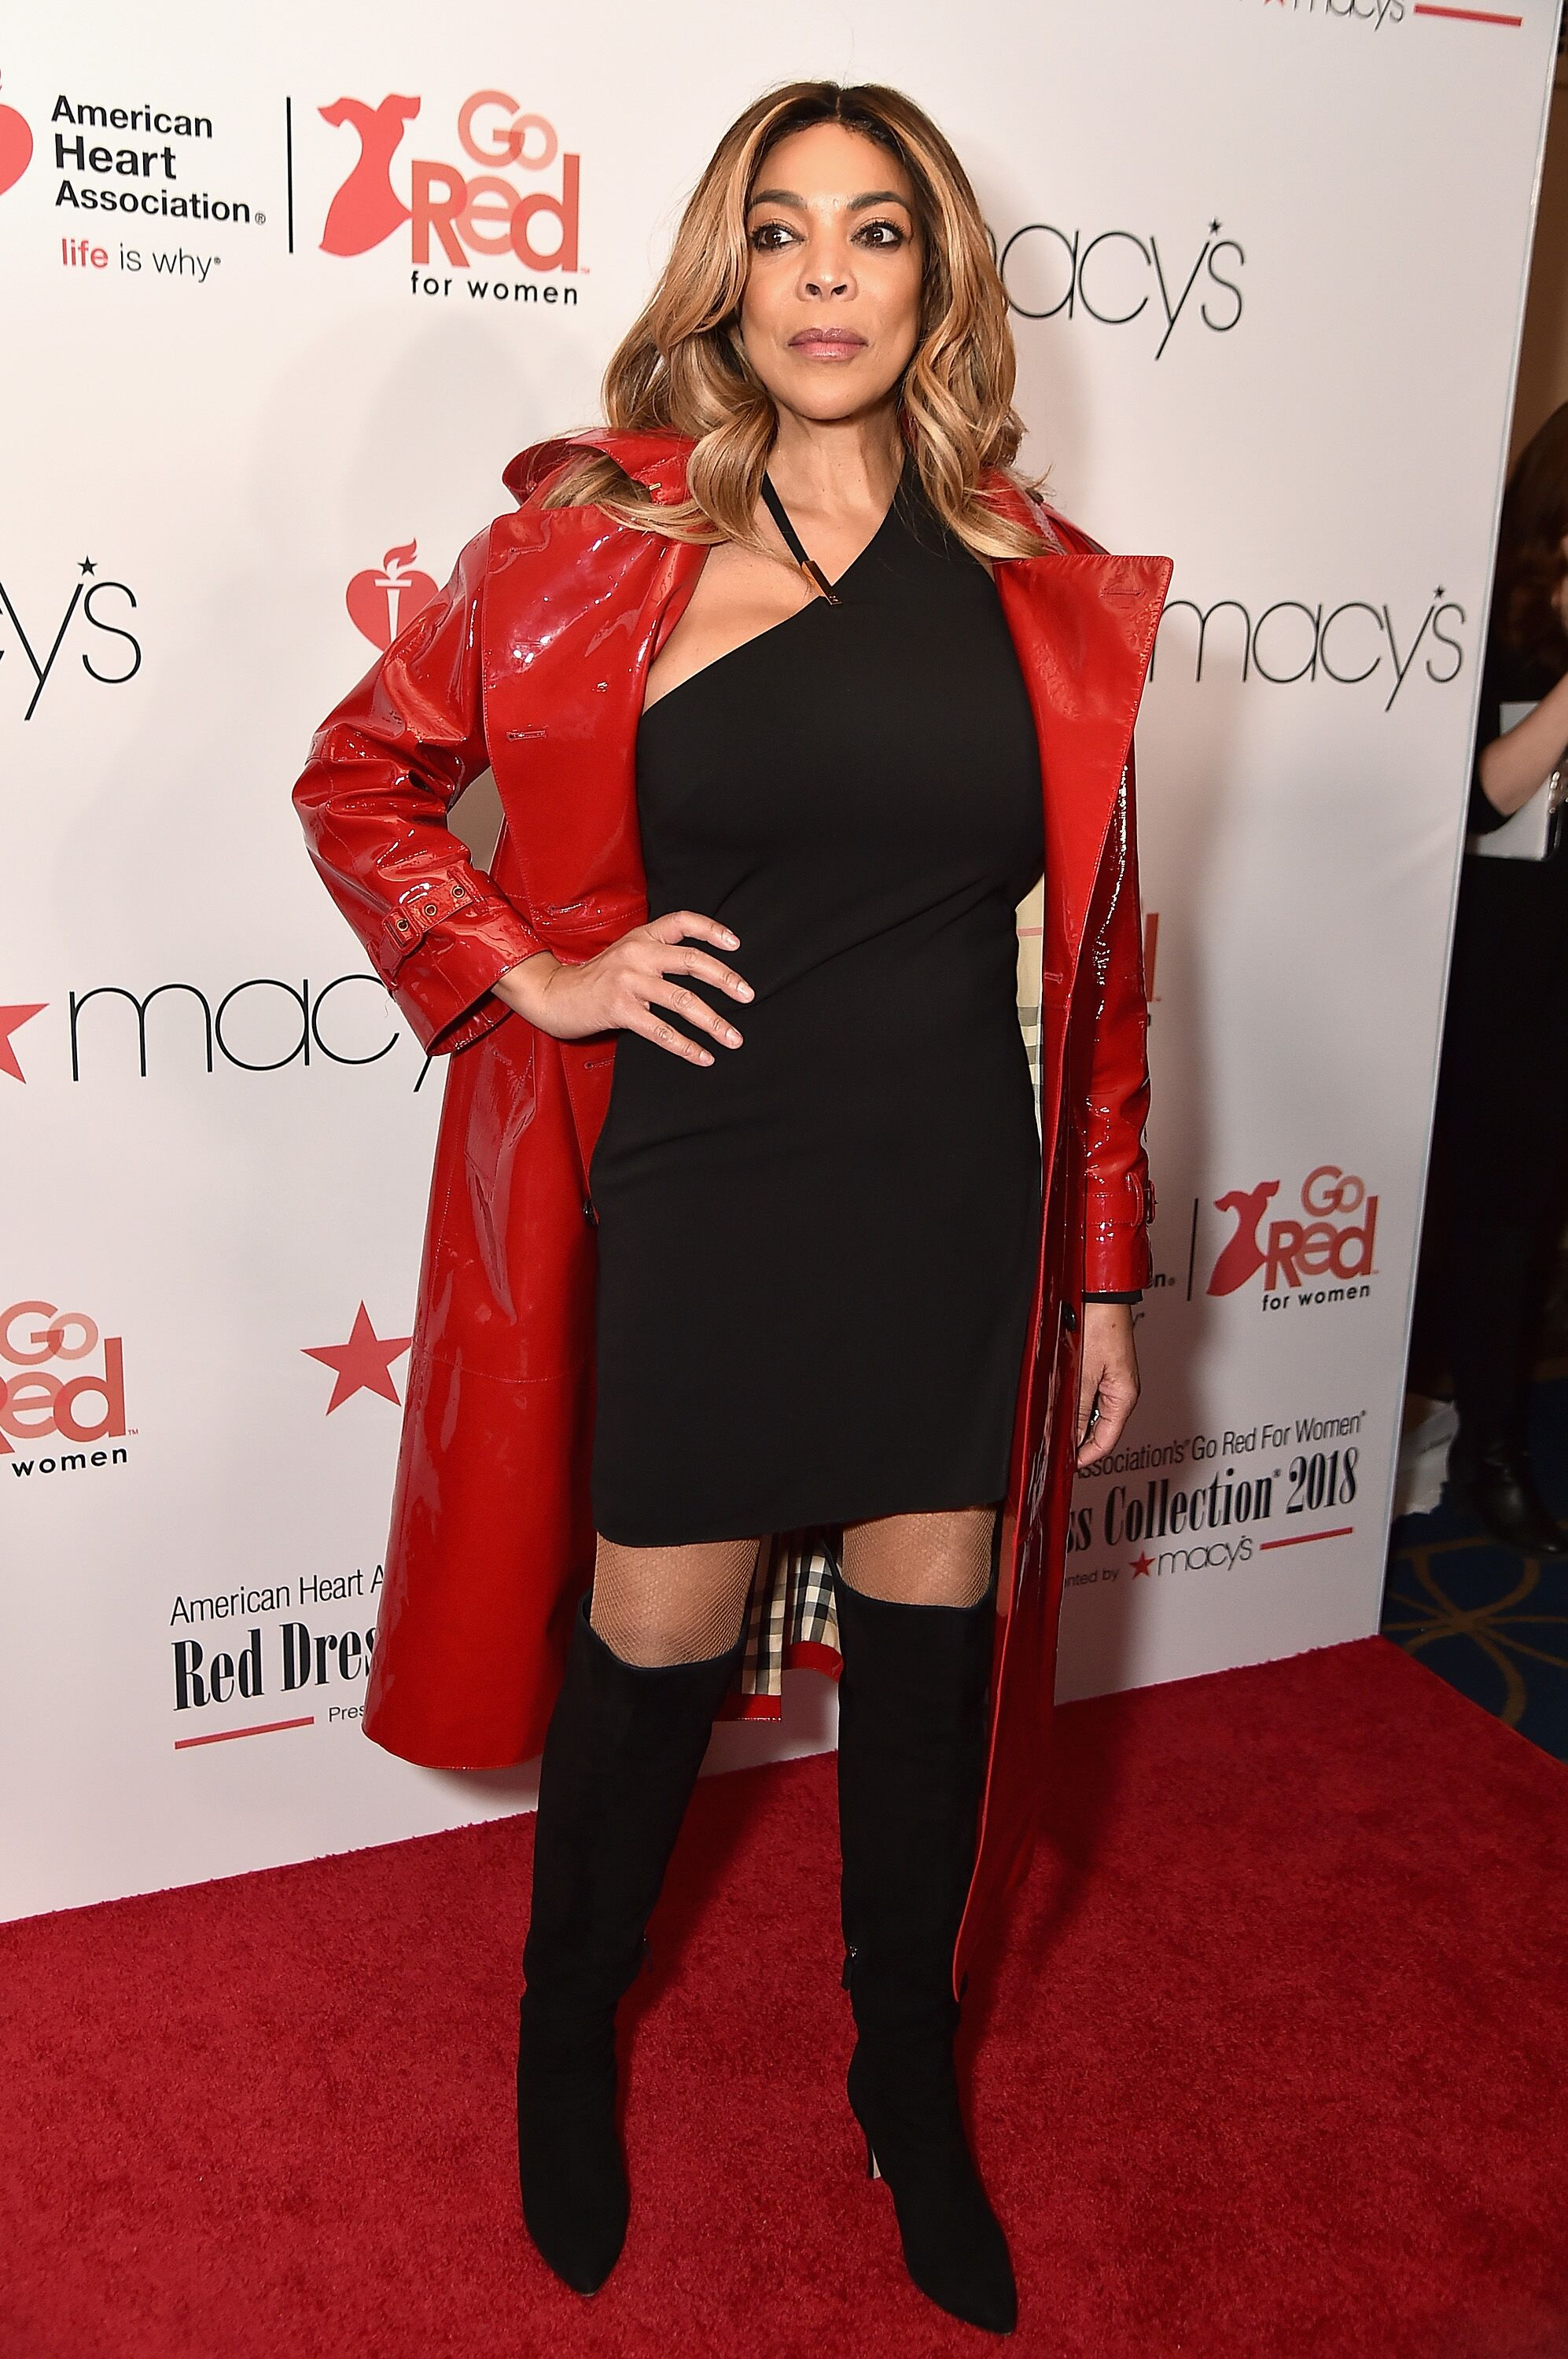 """TV host Wendy Williams at Macy's """"Go Red"""" event/ Source: Getty Images/GlobalImagesUkraine"""